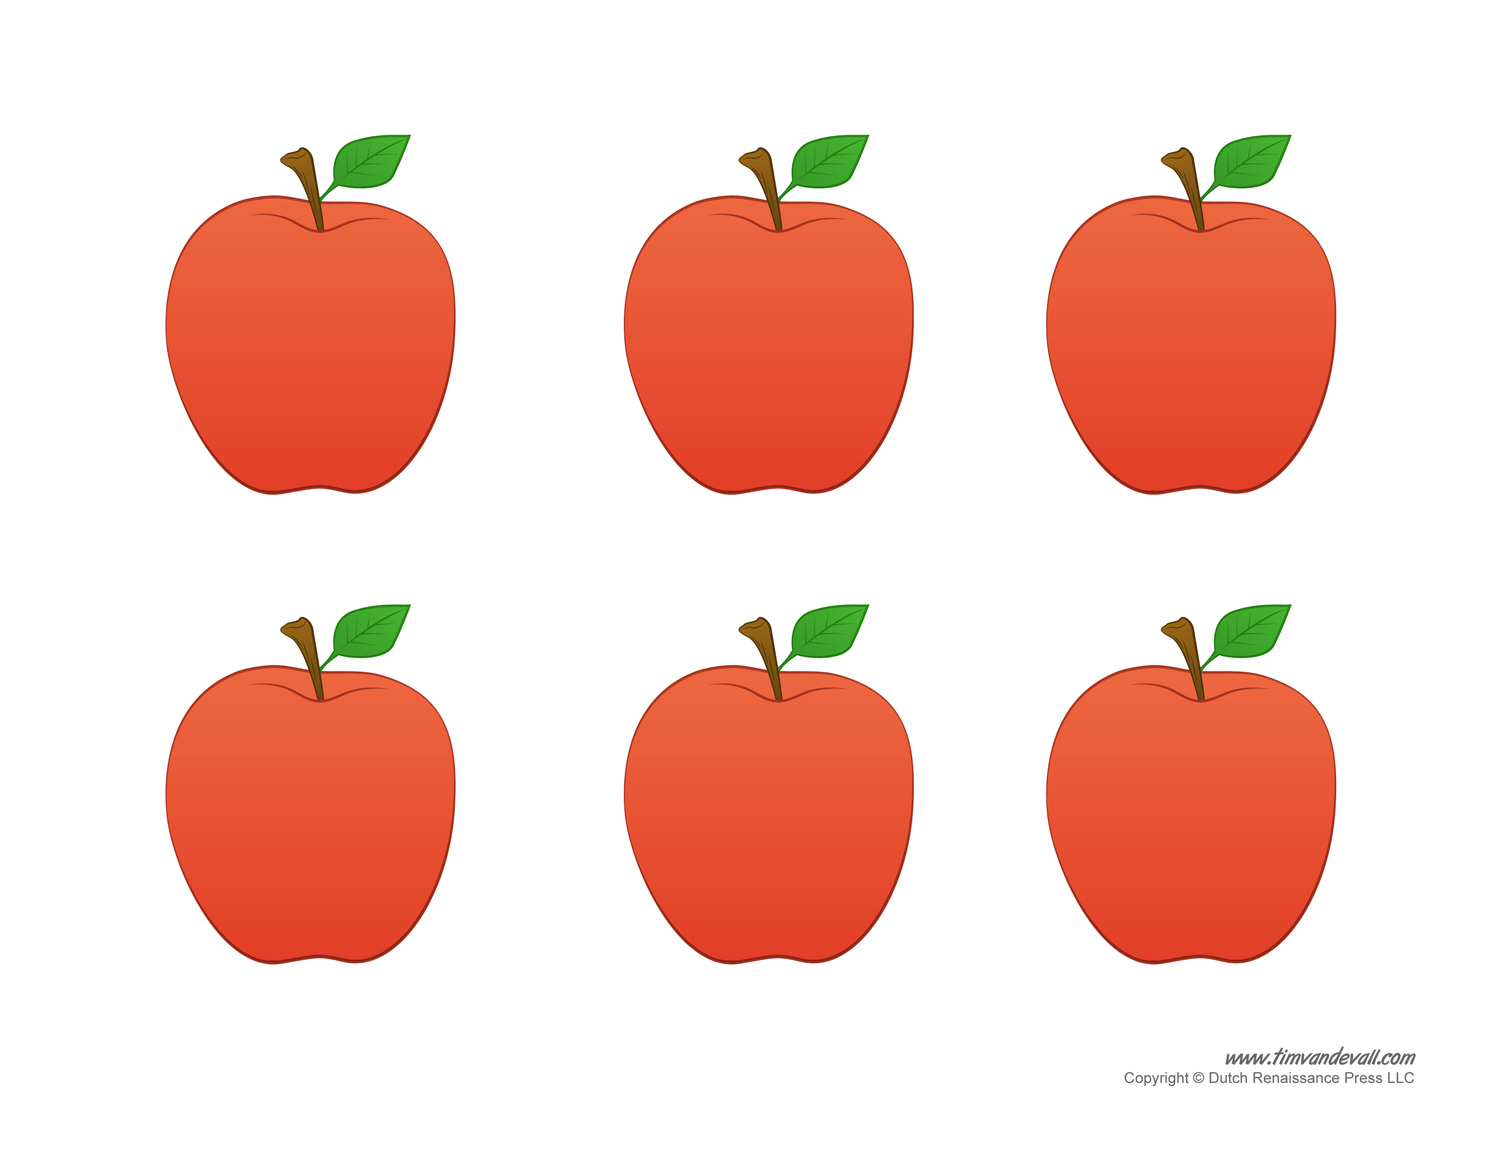 This is an image of Free Printable Apple Template regarding lesson